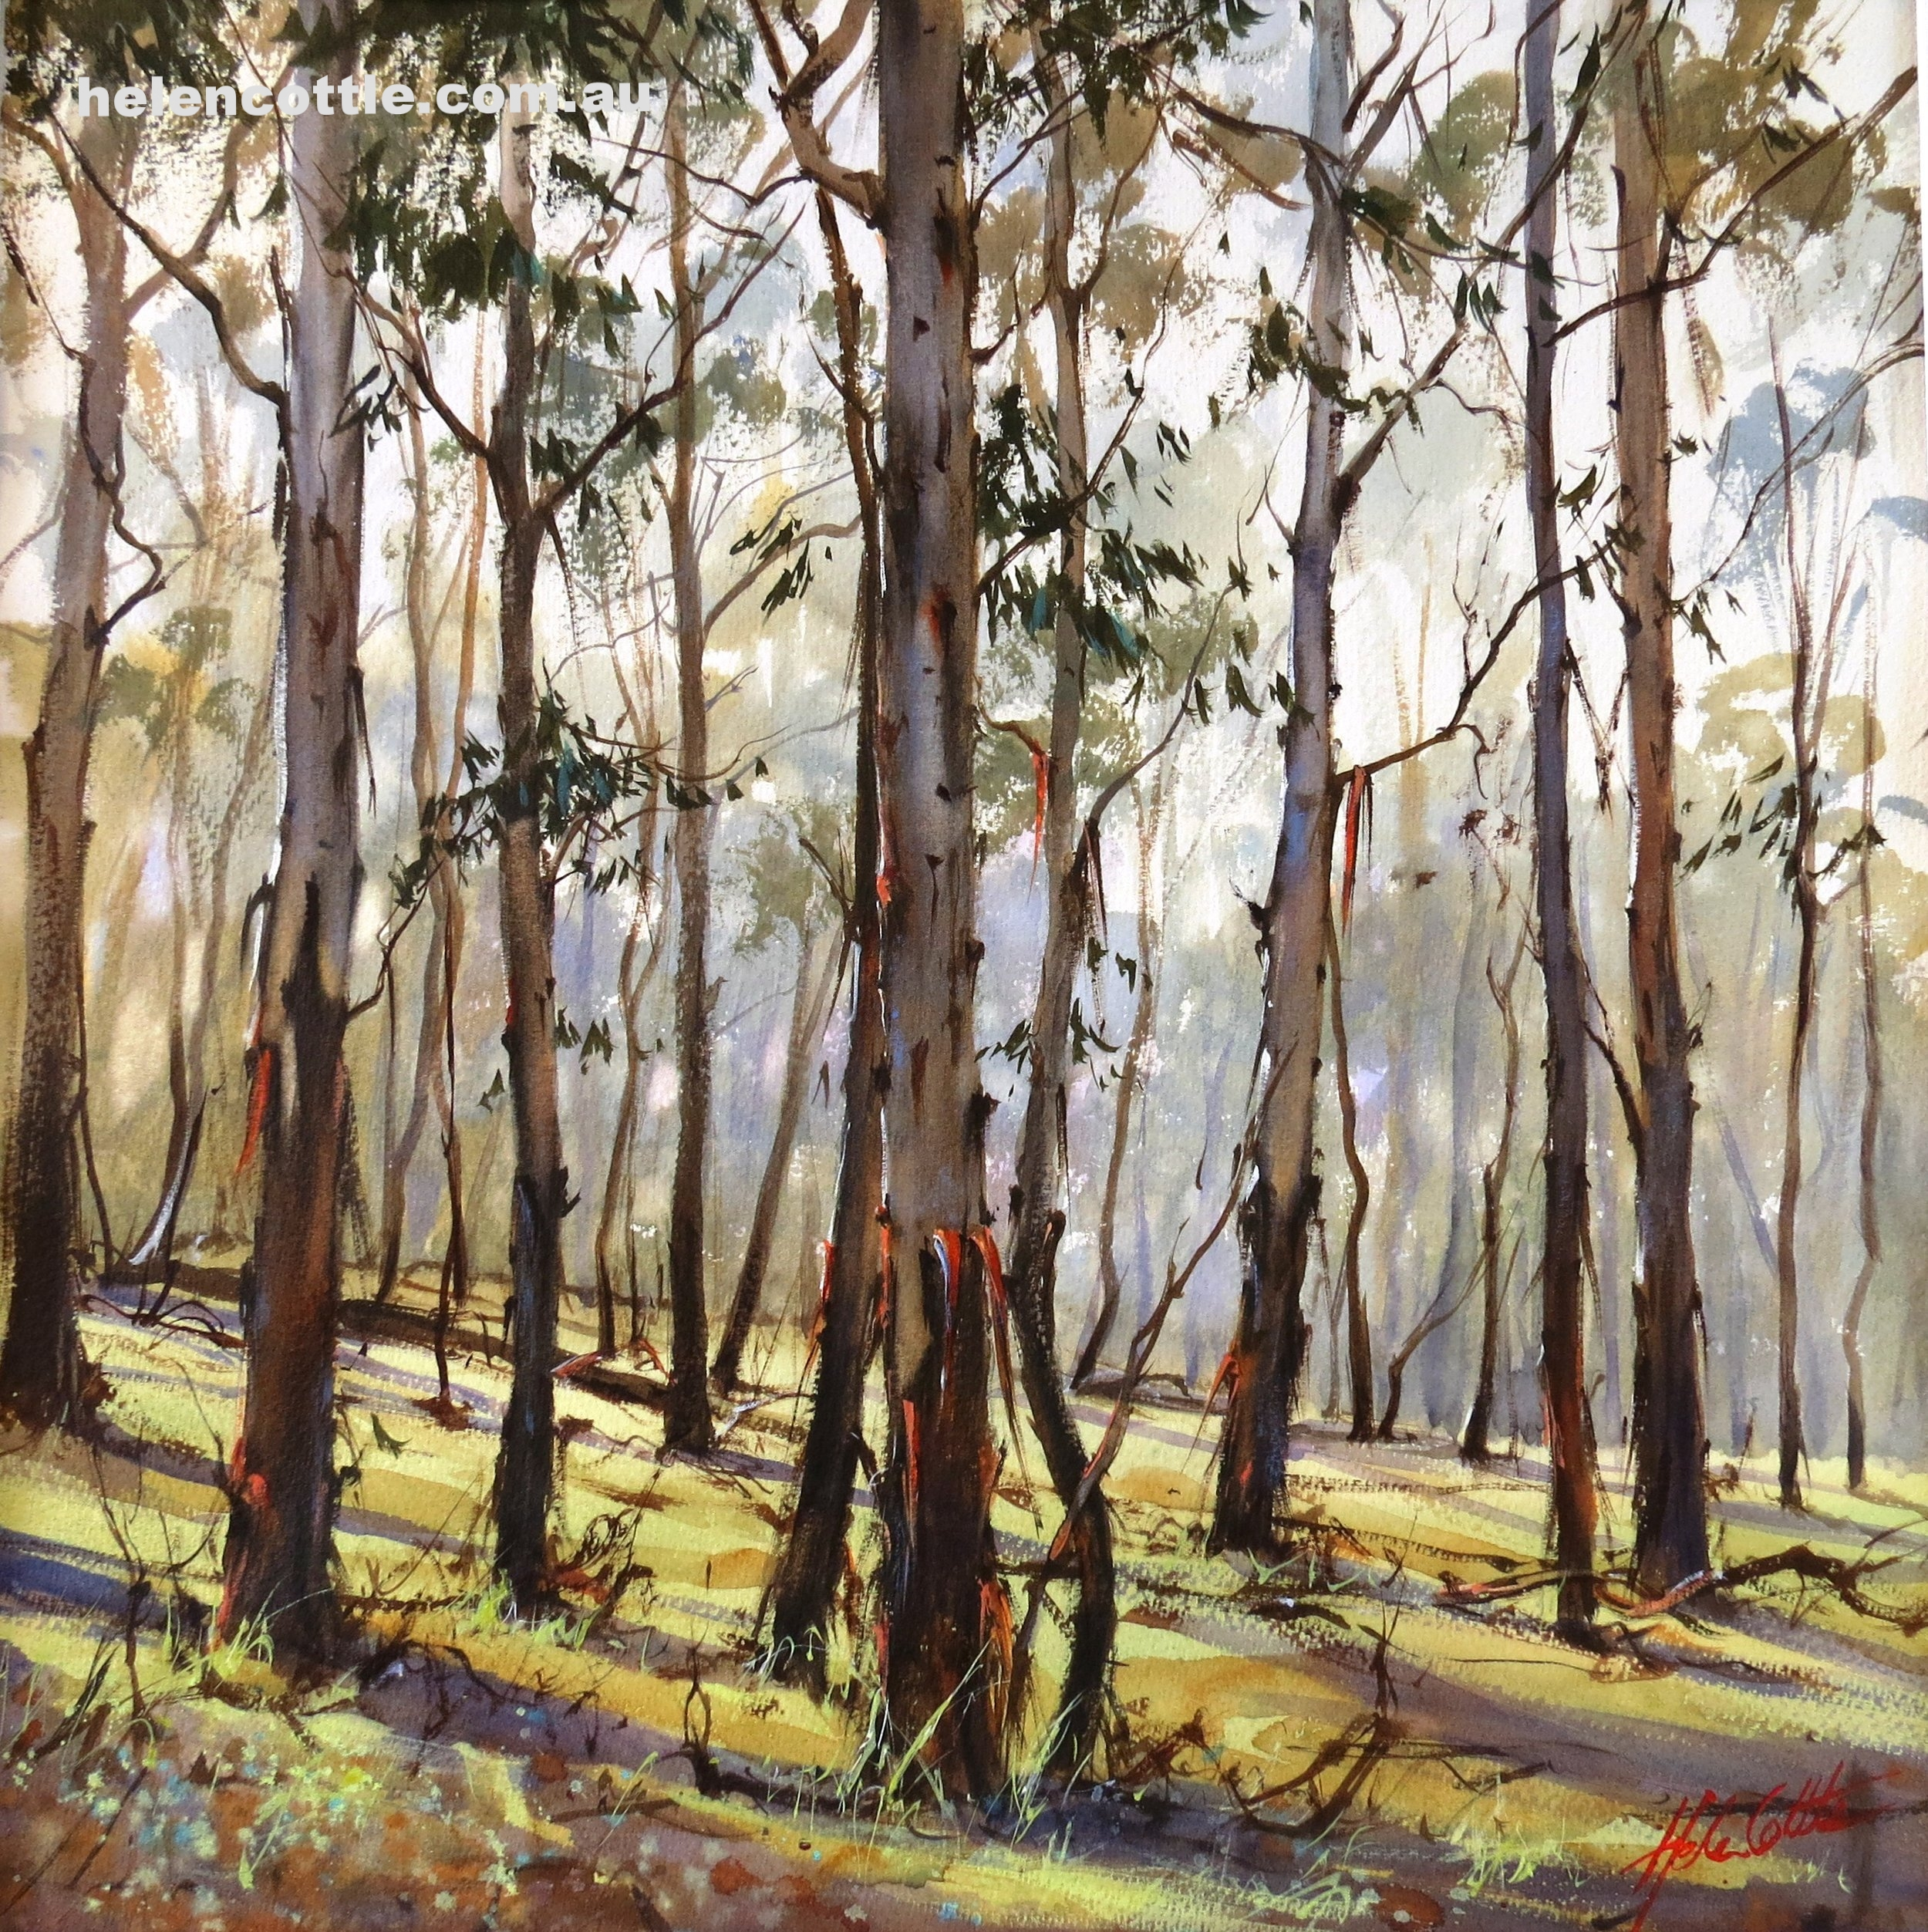 Silent Morning, Mount Macedon Watercolour on Arches paper 62x54cm By Helen Cottle.JPG